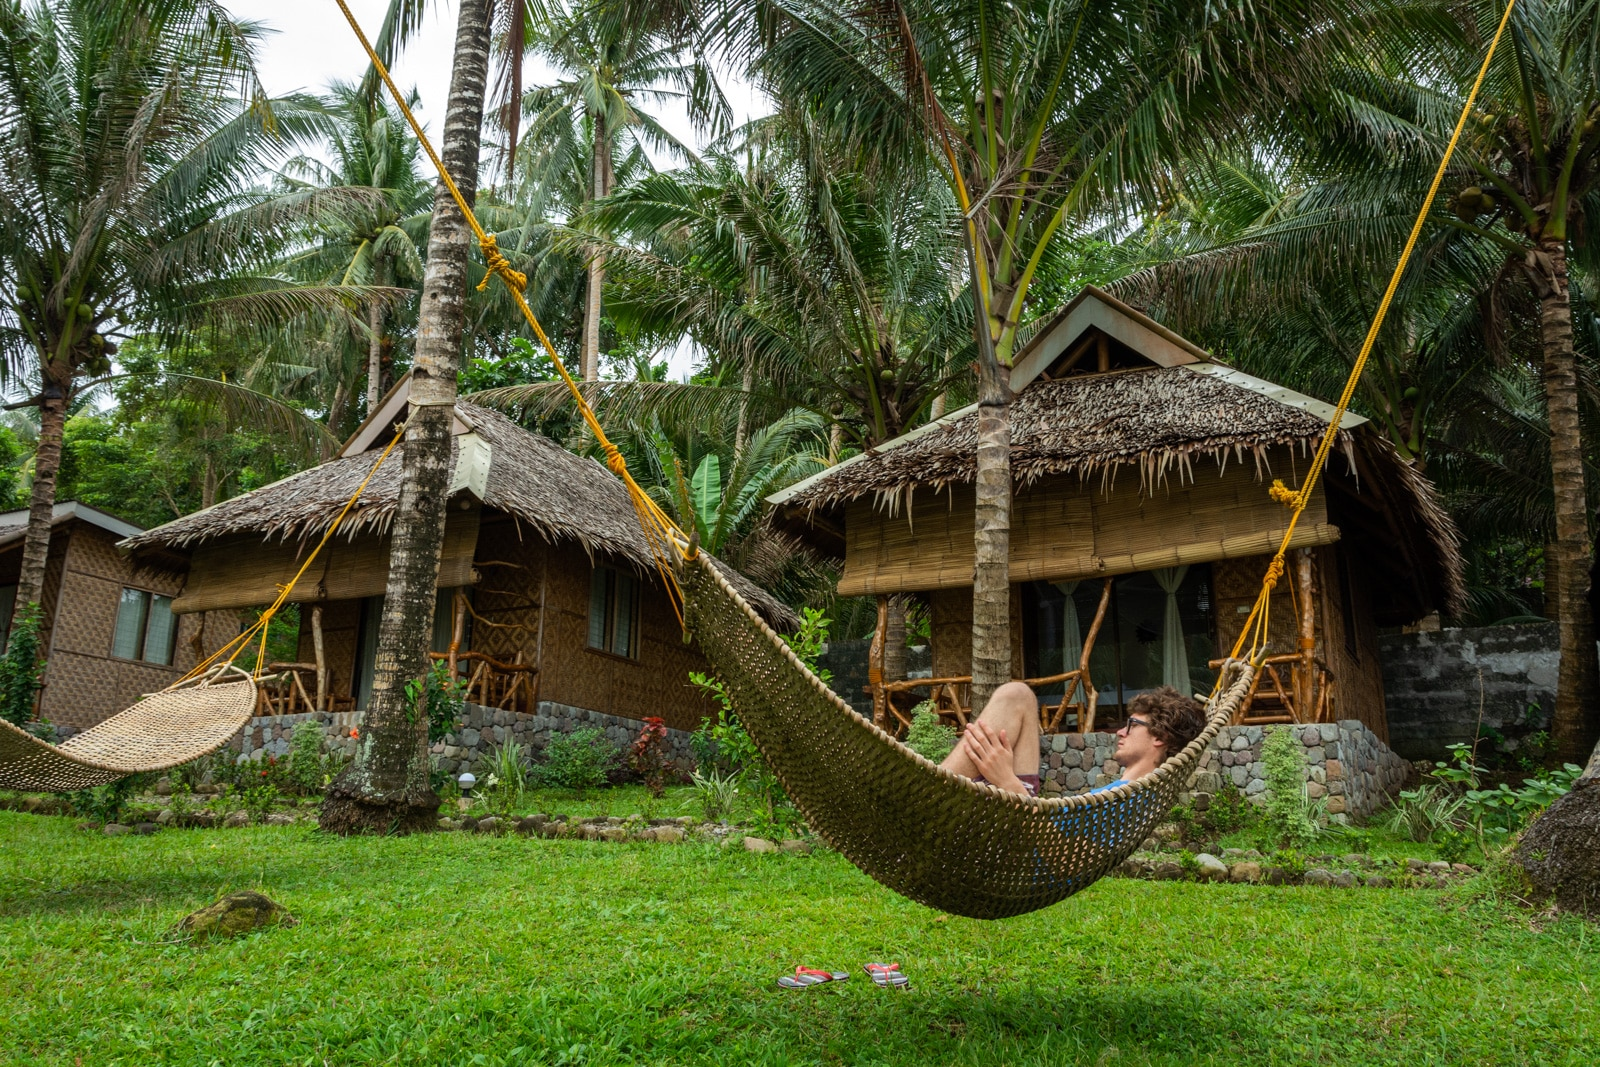 Boy relaxing in a hammock at Volcan Eco Resort on Camiguin Island, Philippines